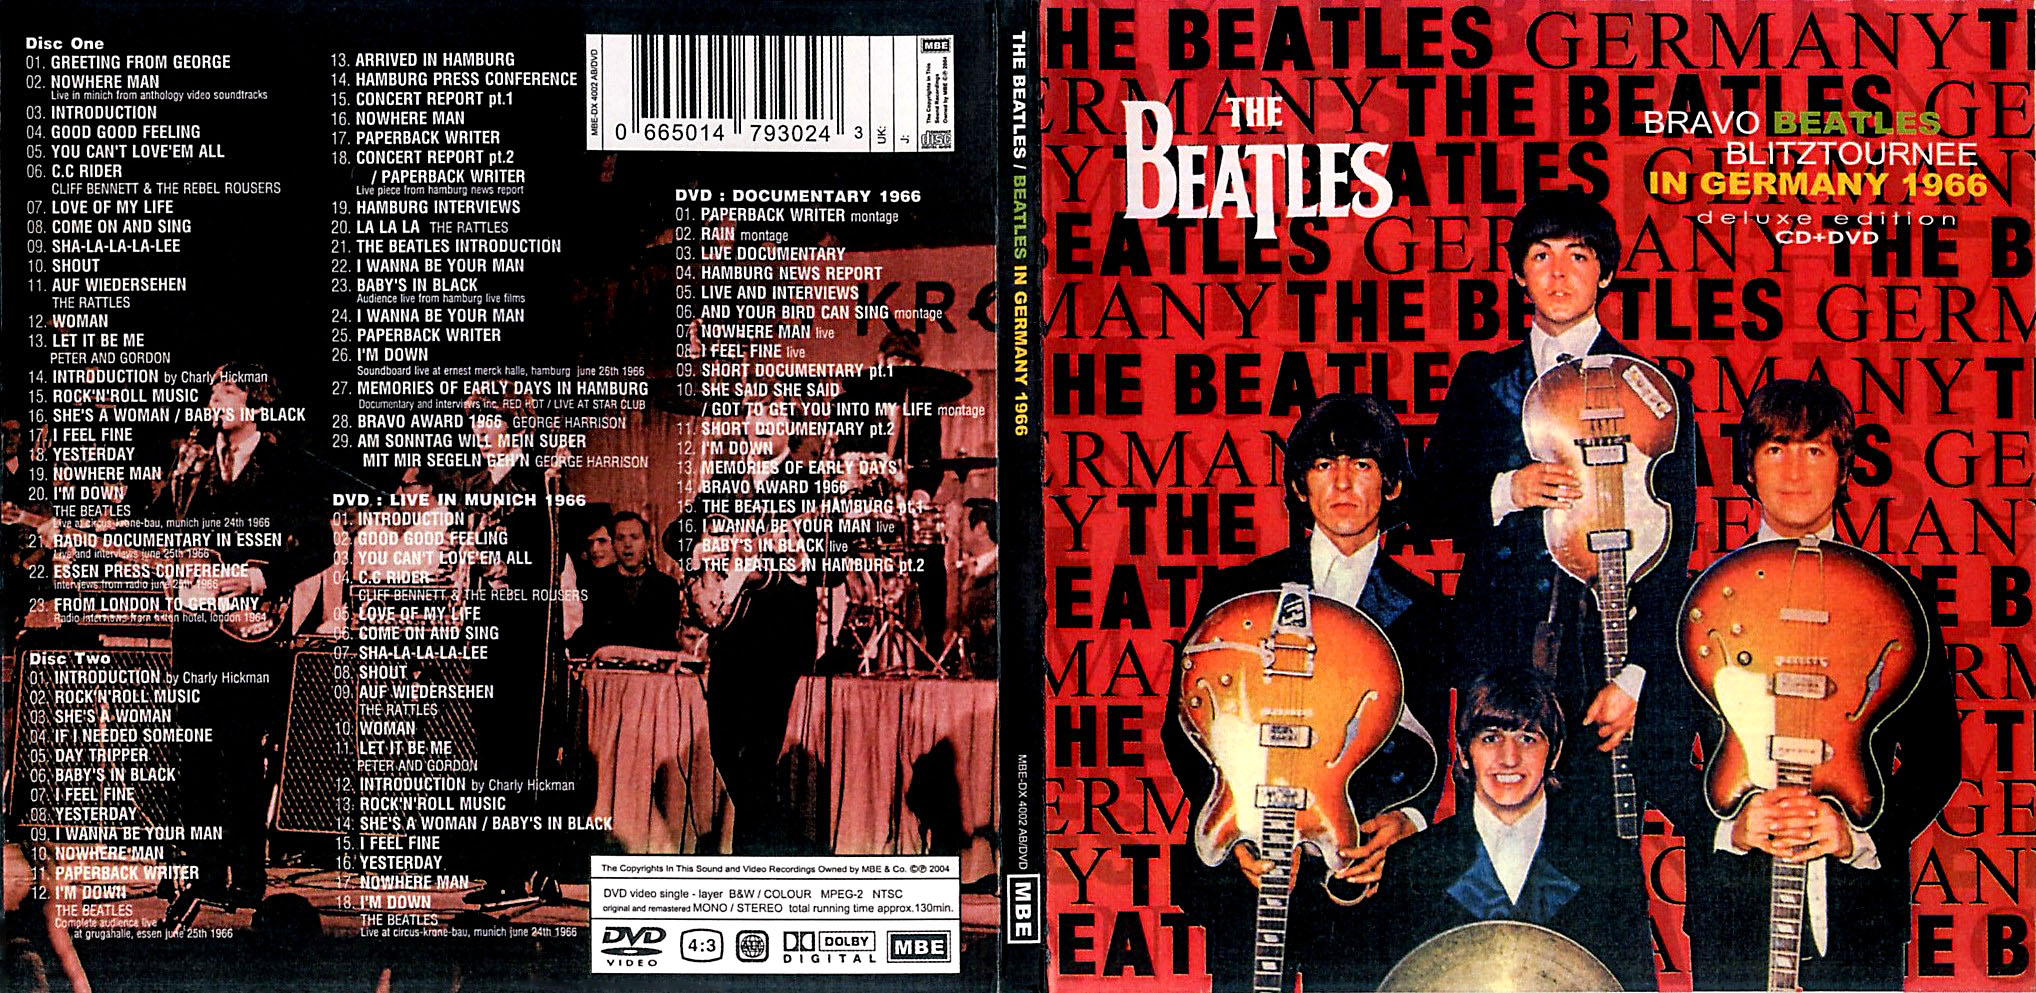 an introduction to the beatles a rock and roll band The beatles to this day are one of the most famous and popular rock 'n roll groups in the world the beatles include george harrison, john lennon(1940-1980), paul mccartney, and richard starkey(ringo starr.